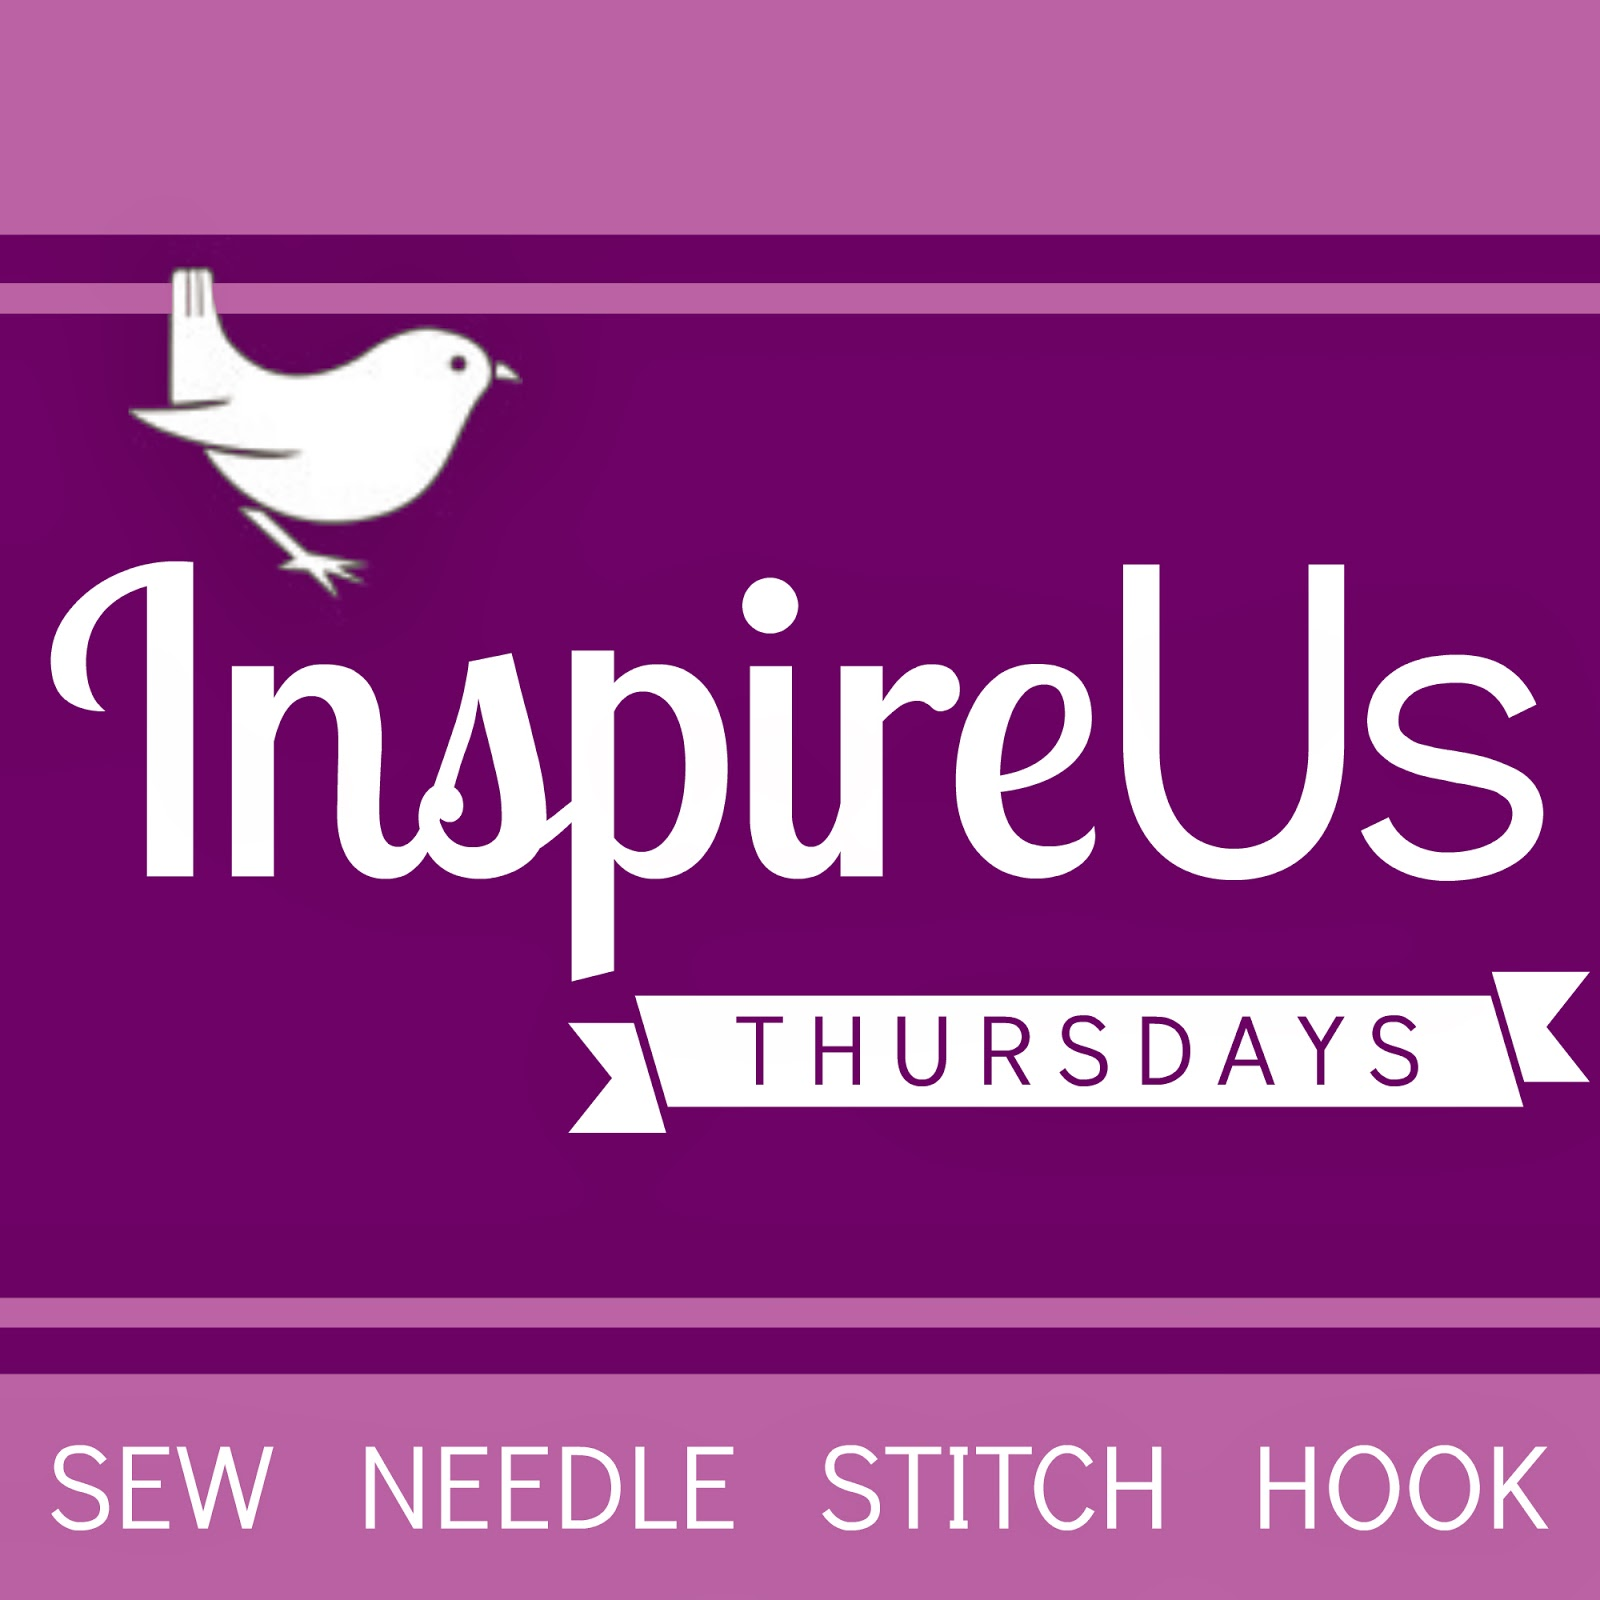 Inspire Us Thursdays: Sew Needle Stitch Hook, a new Link Party beginning April 3!   The Inspired Wren